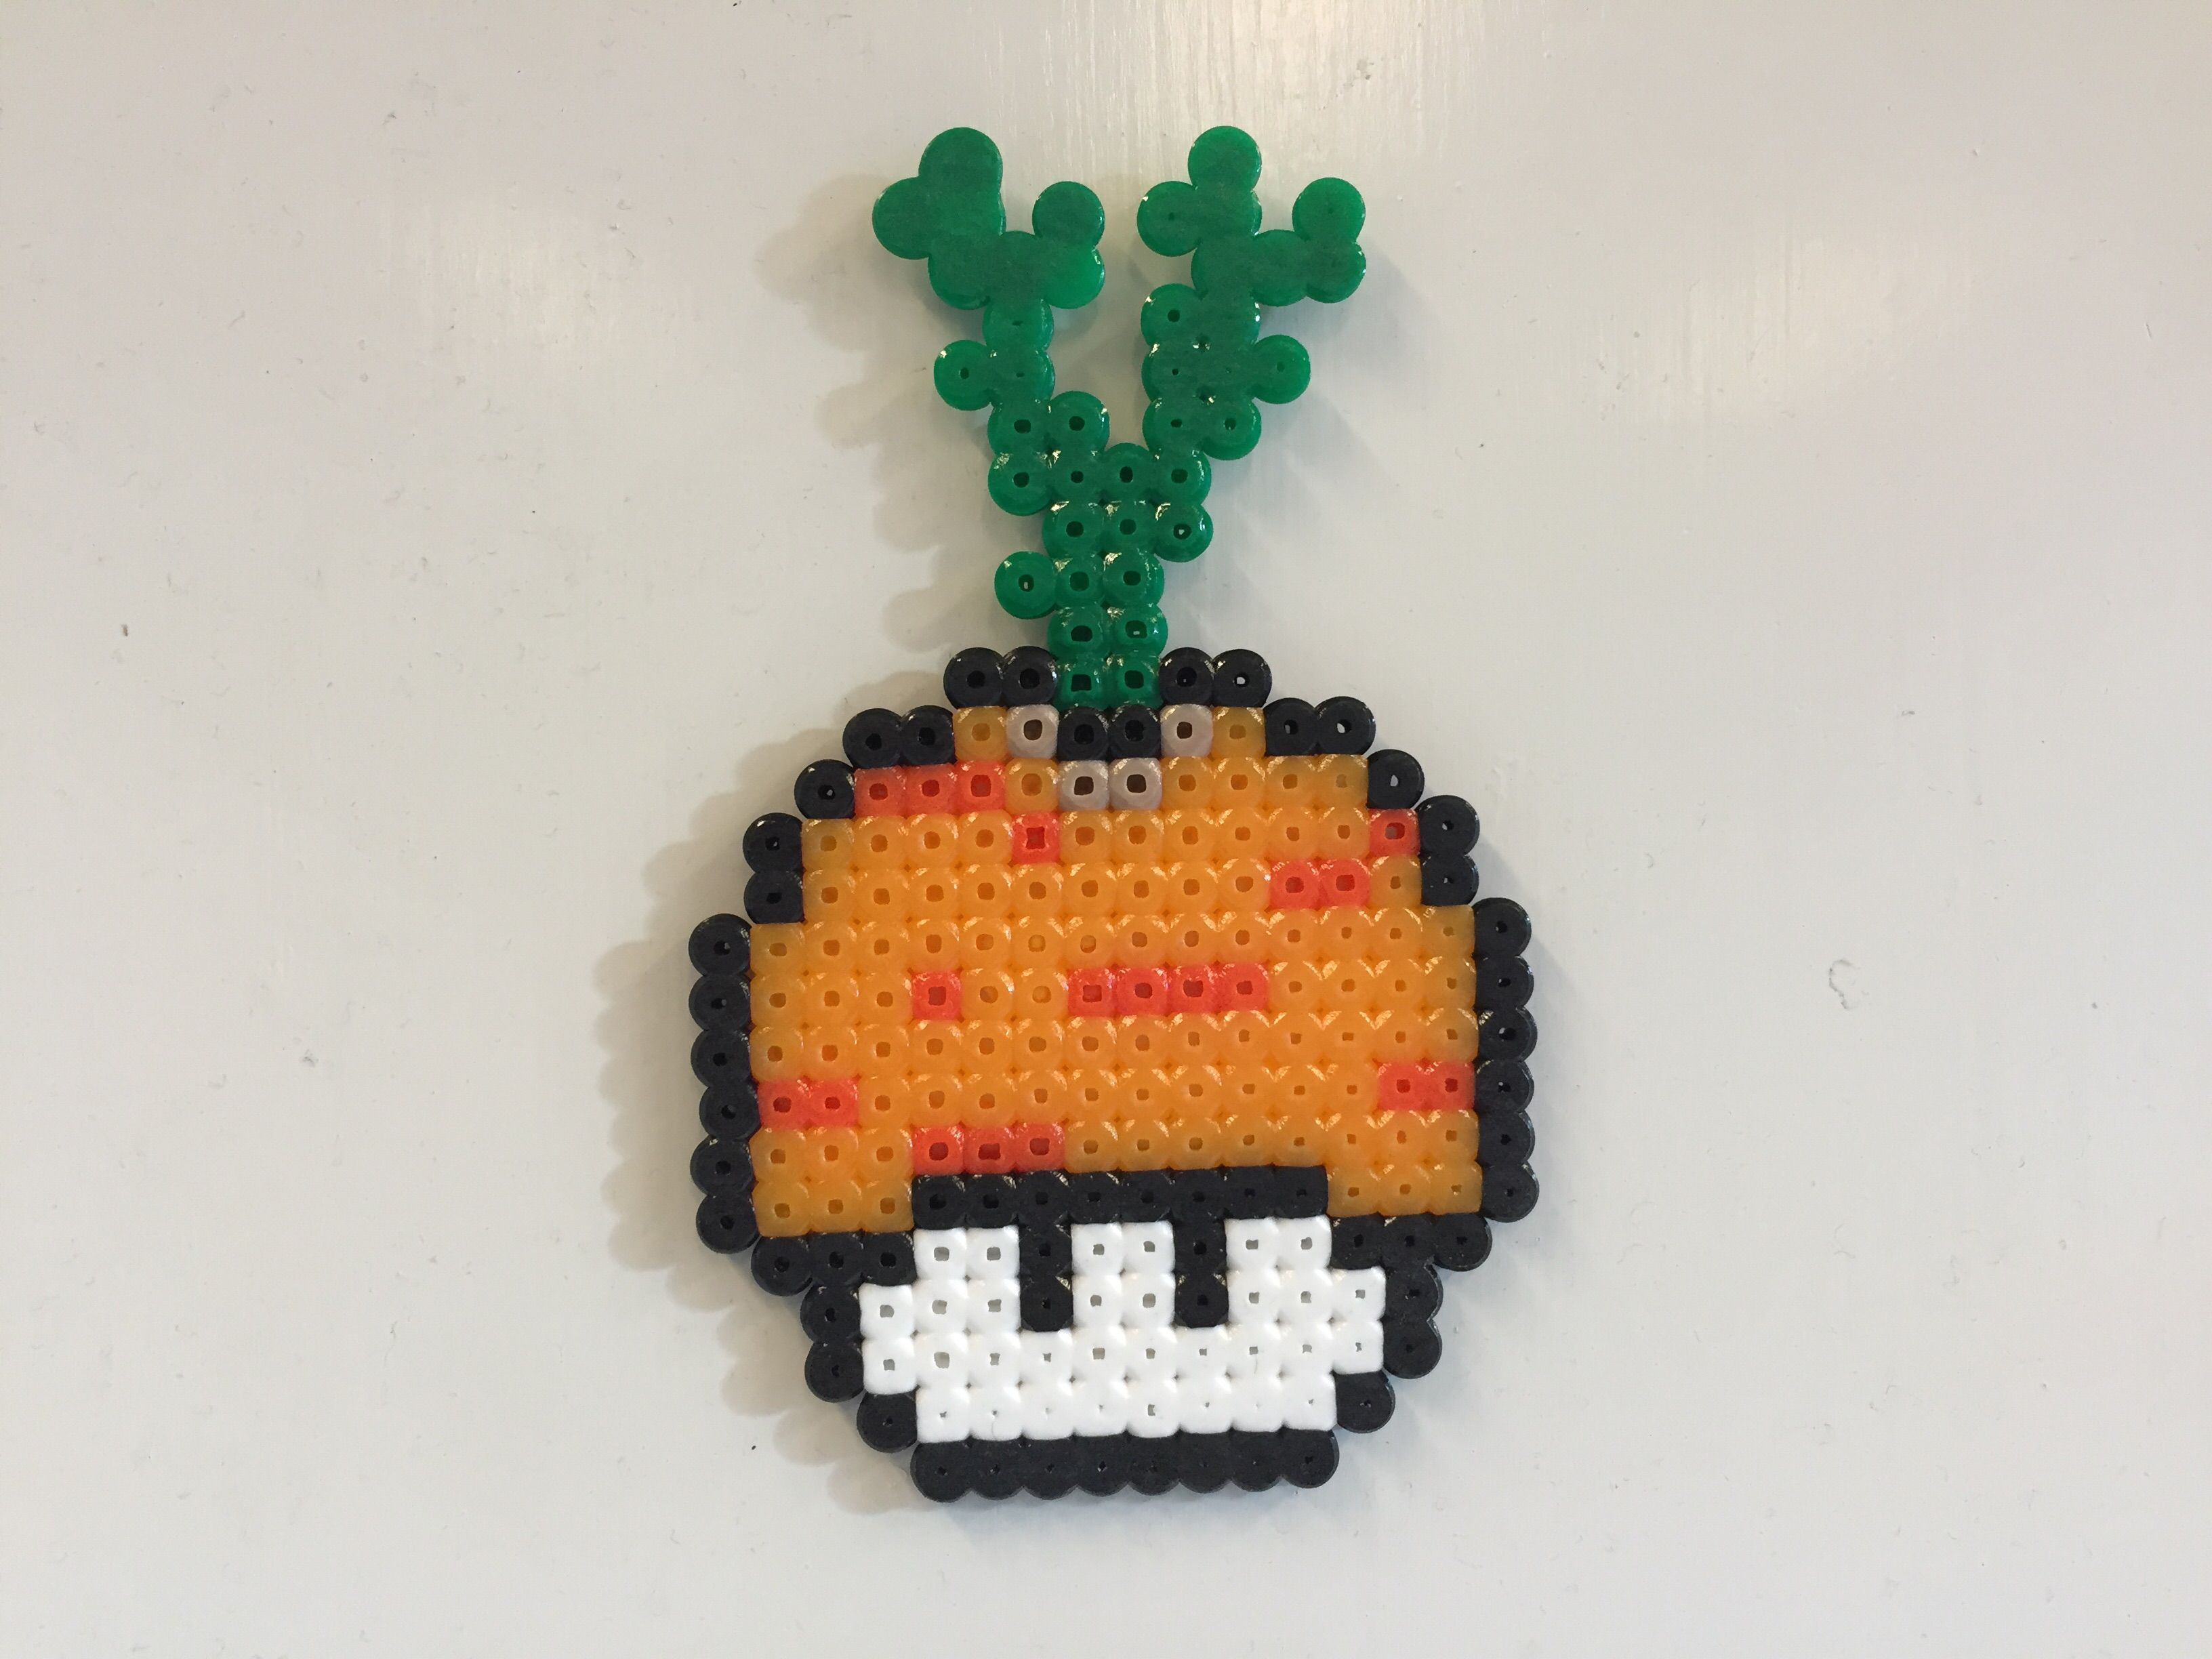 Pin On My Shrooms Hama beads come in a range of sizes with hama bead designs and hama bead patterns in a range of bright and fun designs to suit children of all ages. pin on my shrooms